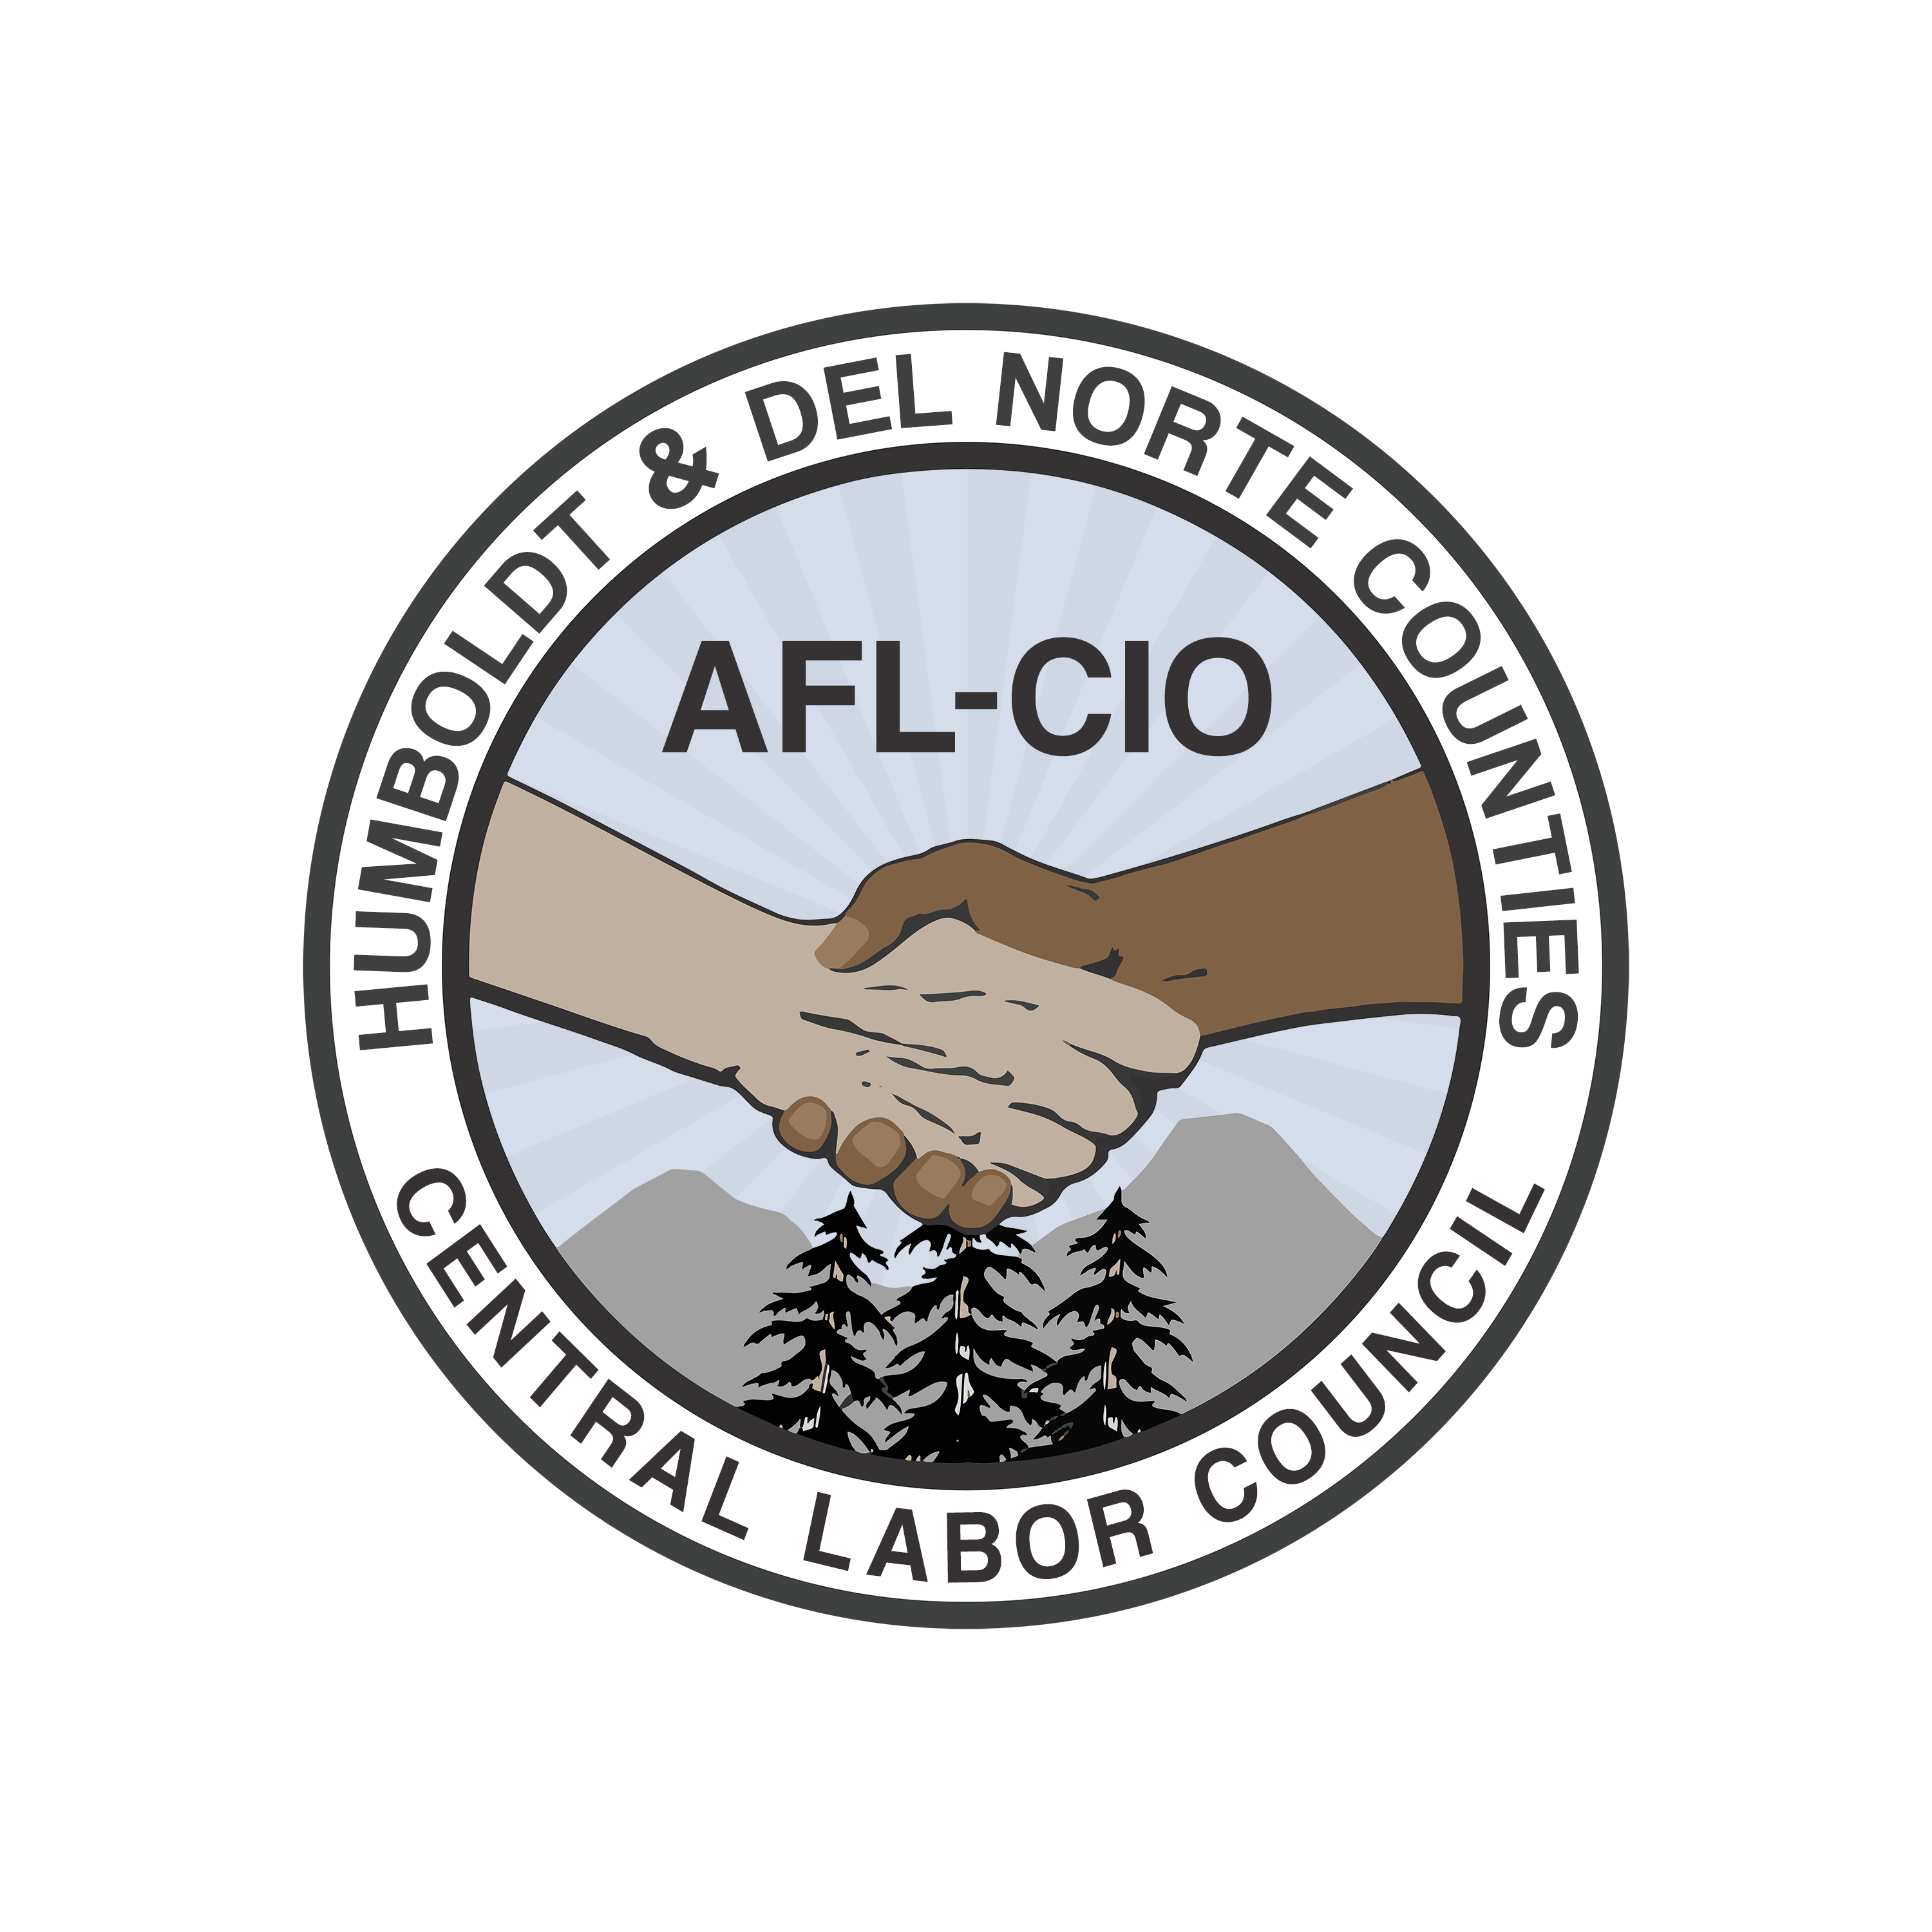 Humboldt and Del Norte Counties Central Labor Council Endorsement